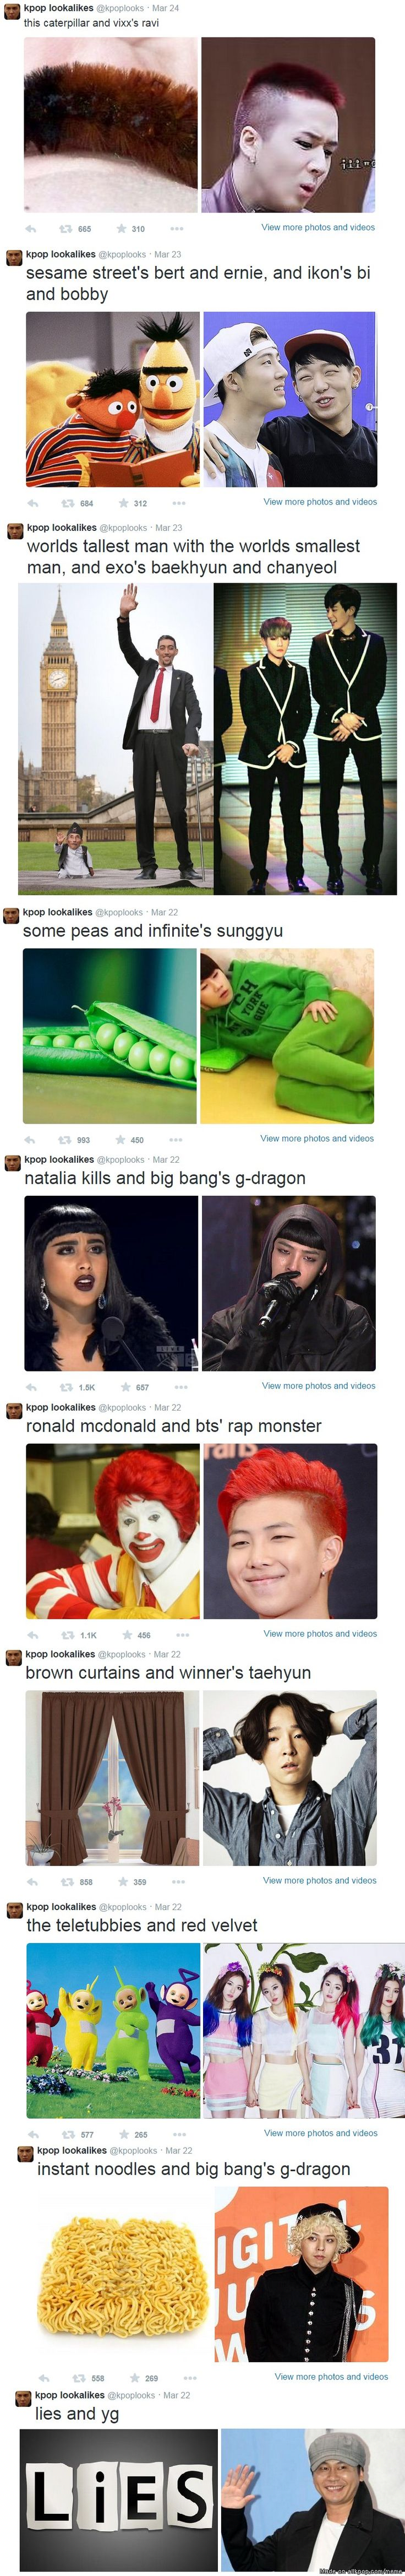 Laughing so hard omg laughing too hard omg the last one BAHAHAHAHAHAHHAHAHAHAHHAHAHAHAHAHAHAHHAHAHAHAHHAAHAHHAAHHAHAHAHAHAHAHHAHAHAHHAHAHAHAHAHAHHAHAHAHAHAHAHAHHAHAHAHAH